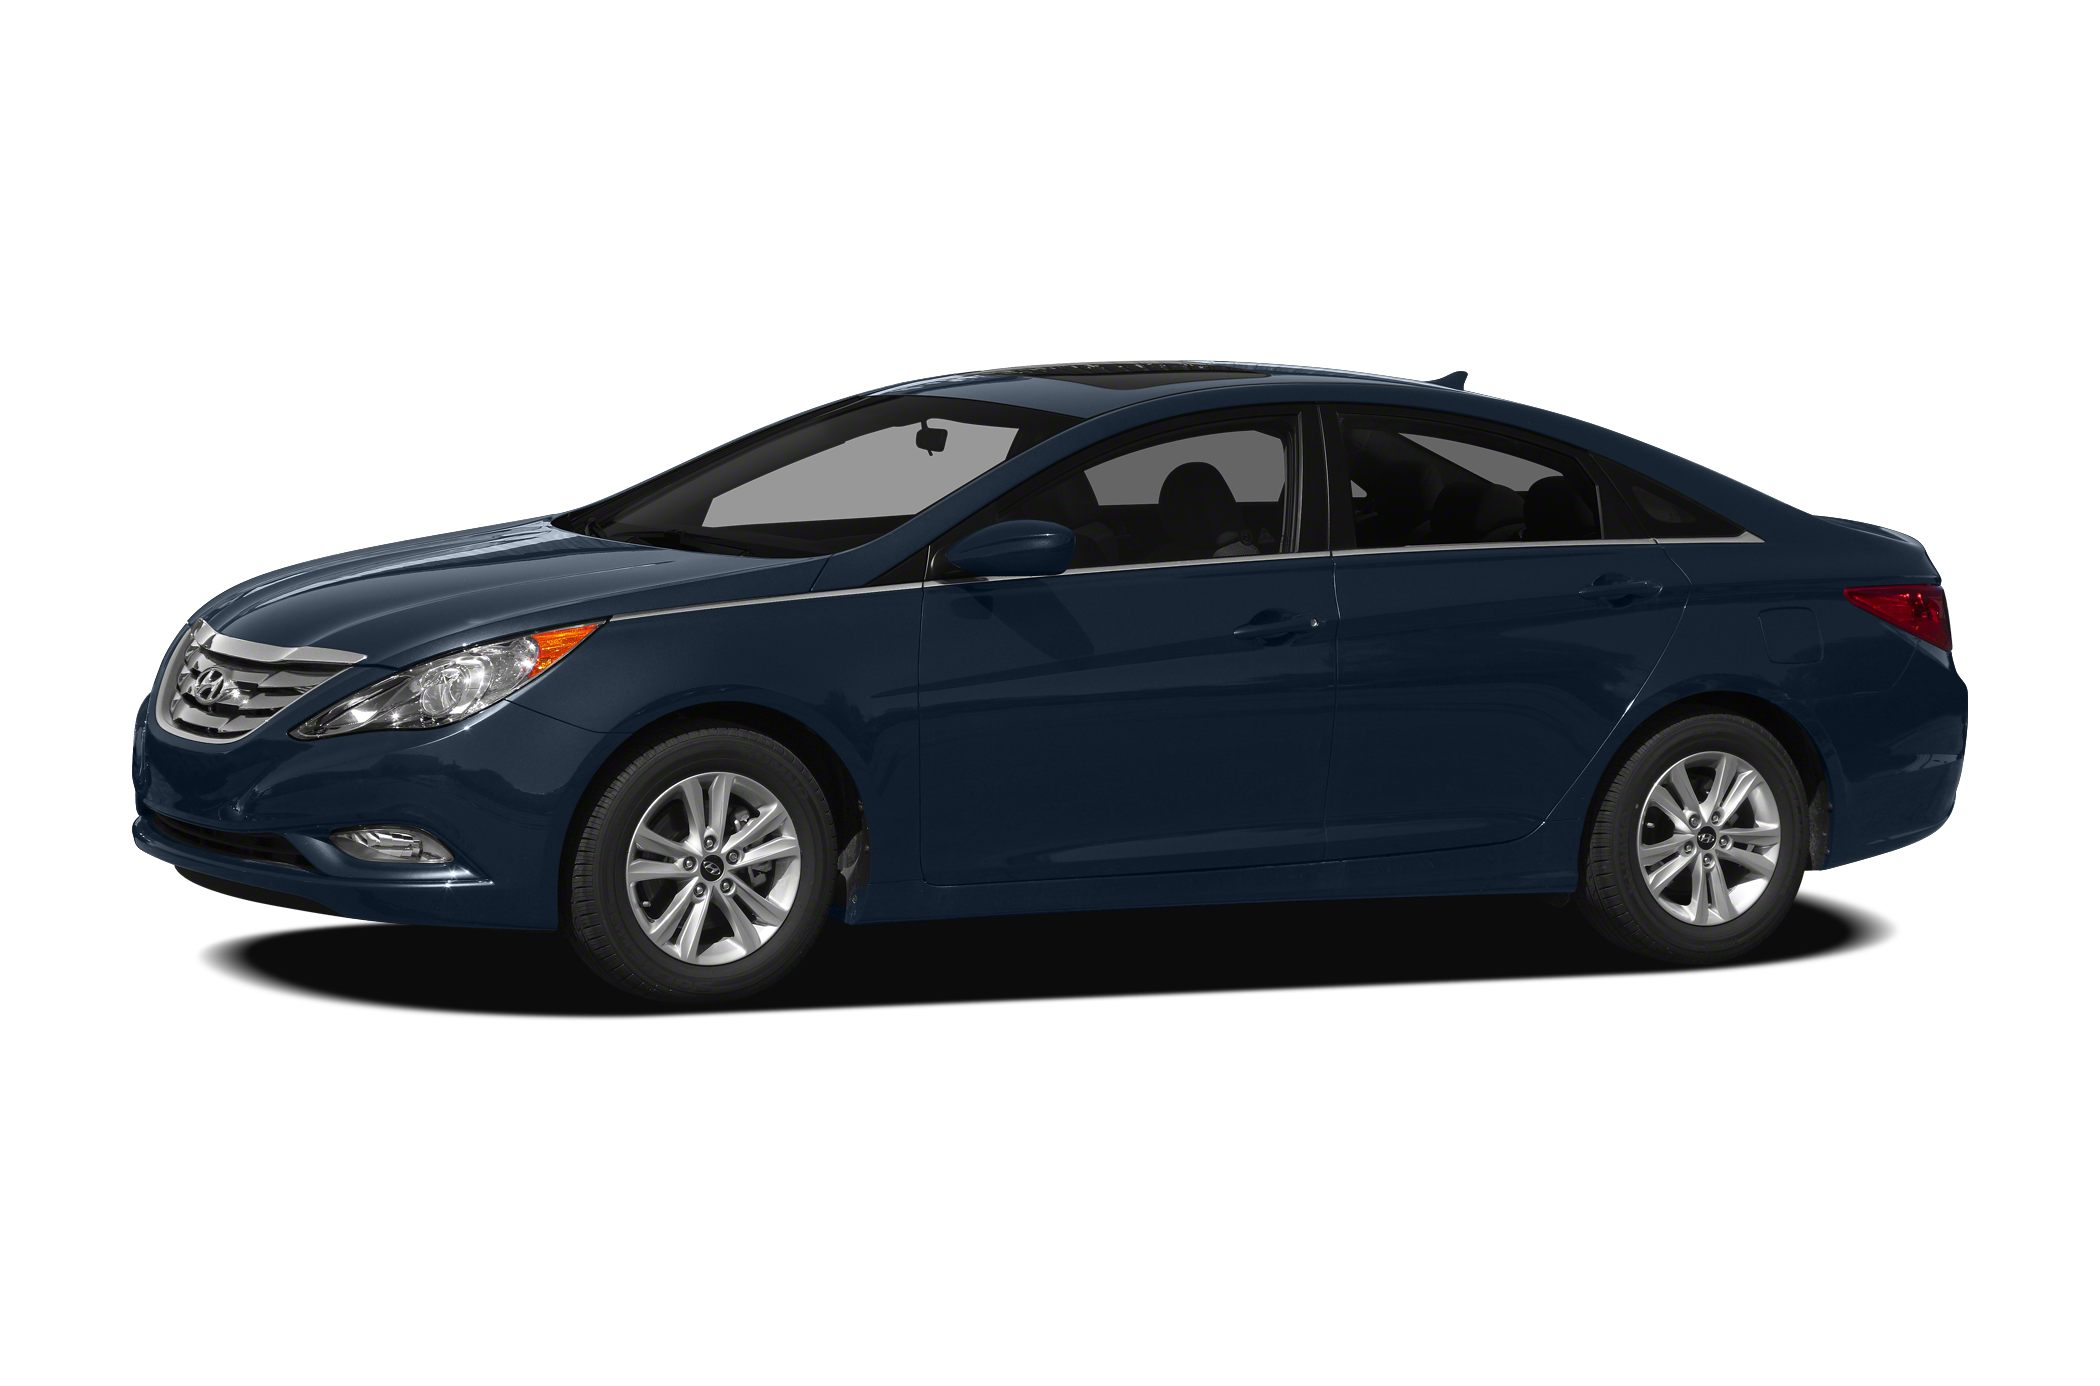 2011 Hyundai Sonata GLS Sedan for sale in Springfield for $11,997 with 50,550 miles.